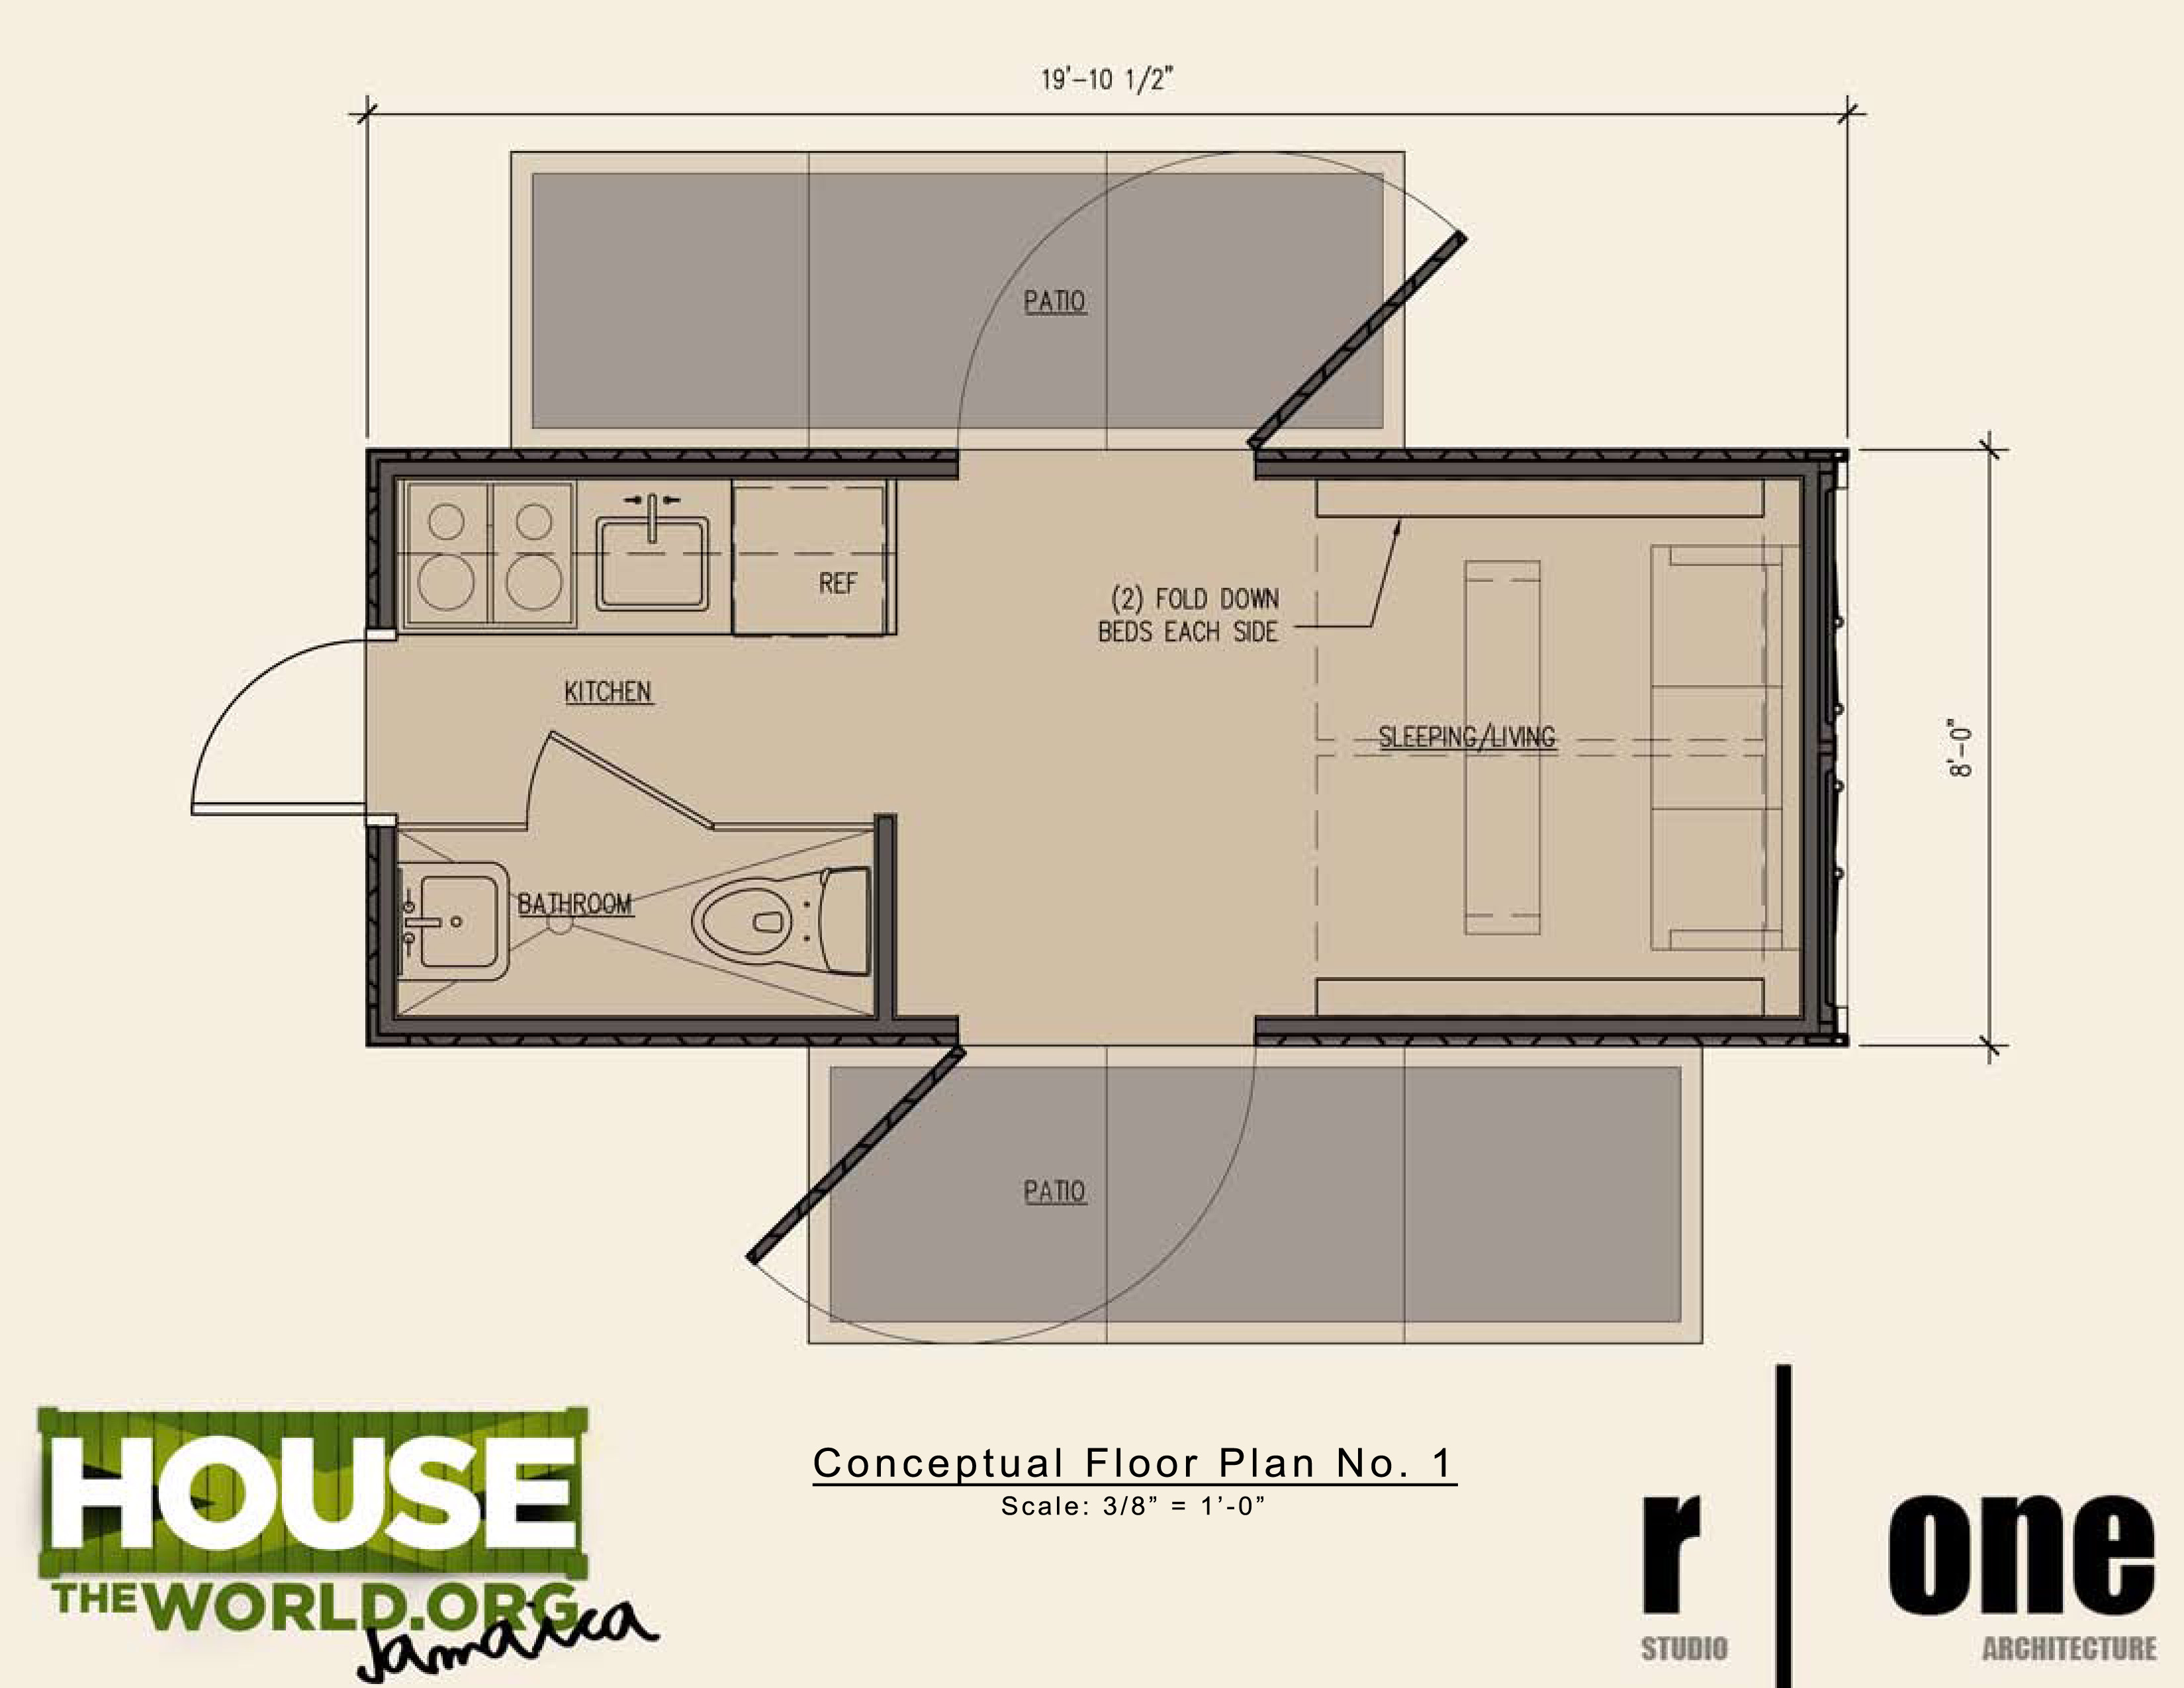 Best Kitchen Gallery: 2x20 Foot Container House V1 View From Above Shipping Container of Container Home Plans  on rachelxblog.com